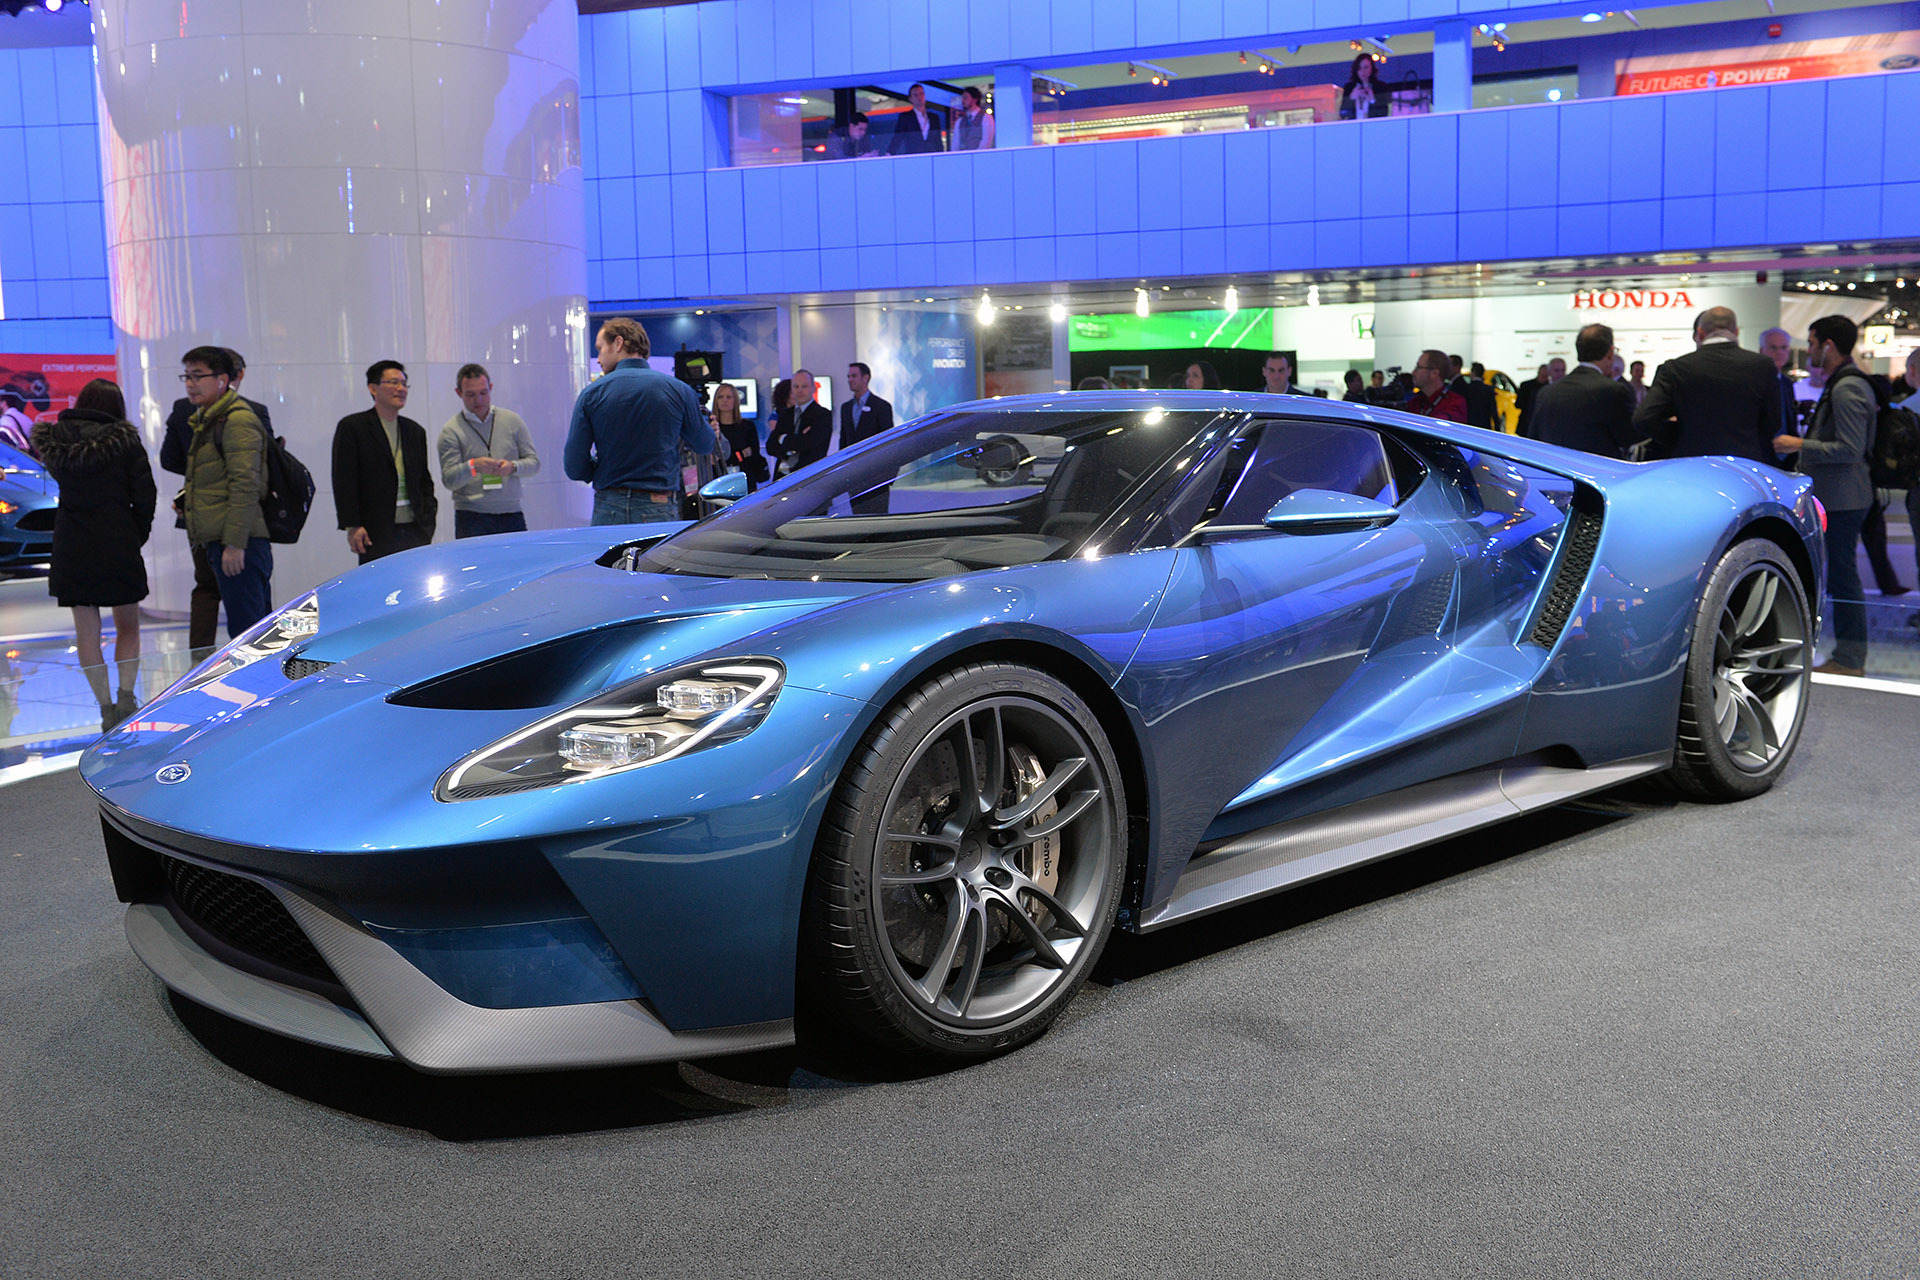 New 2017 Ford GT Official Debut - Page 4 - ClubLexus ...